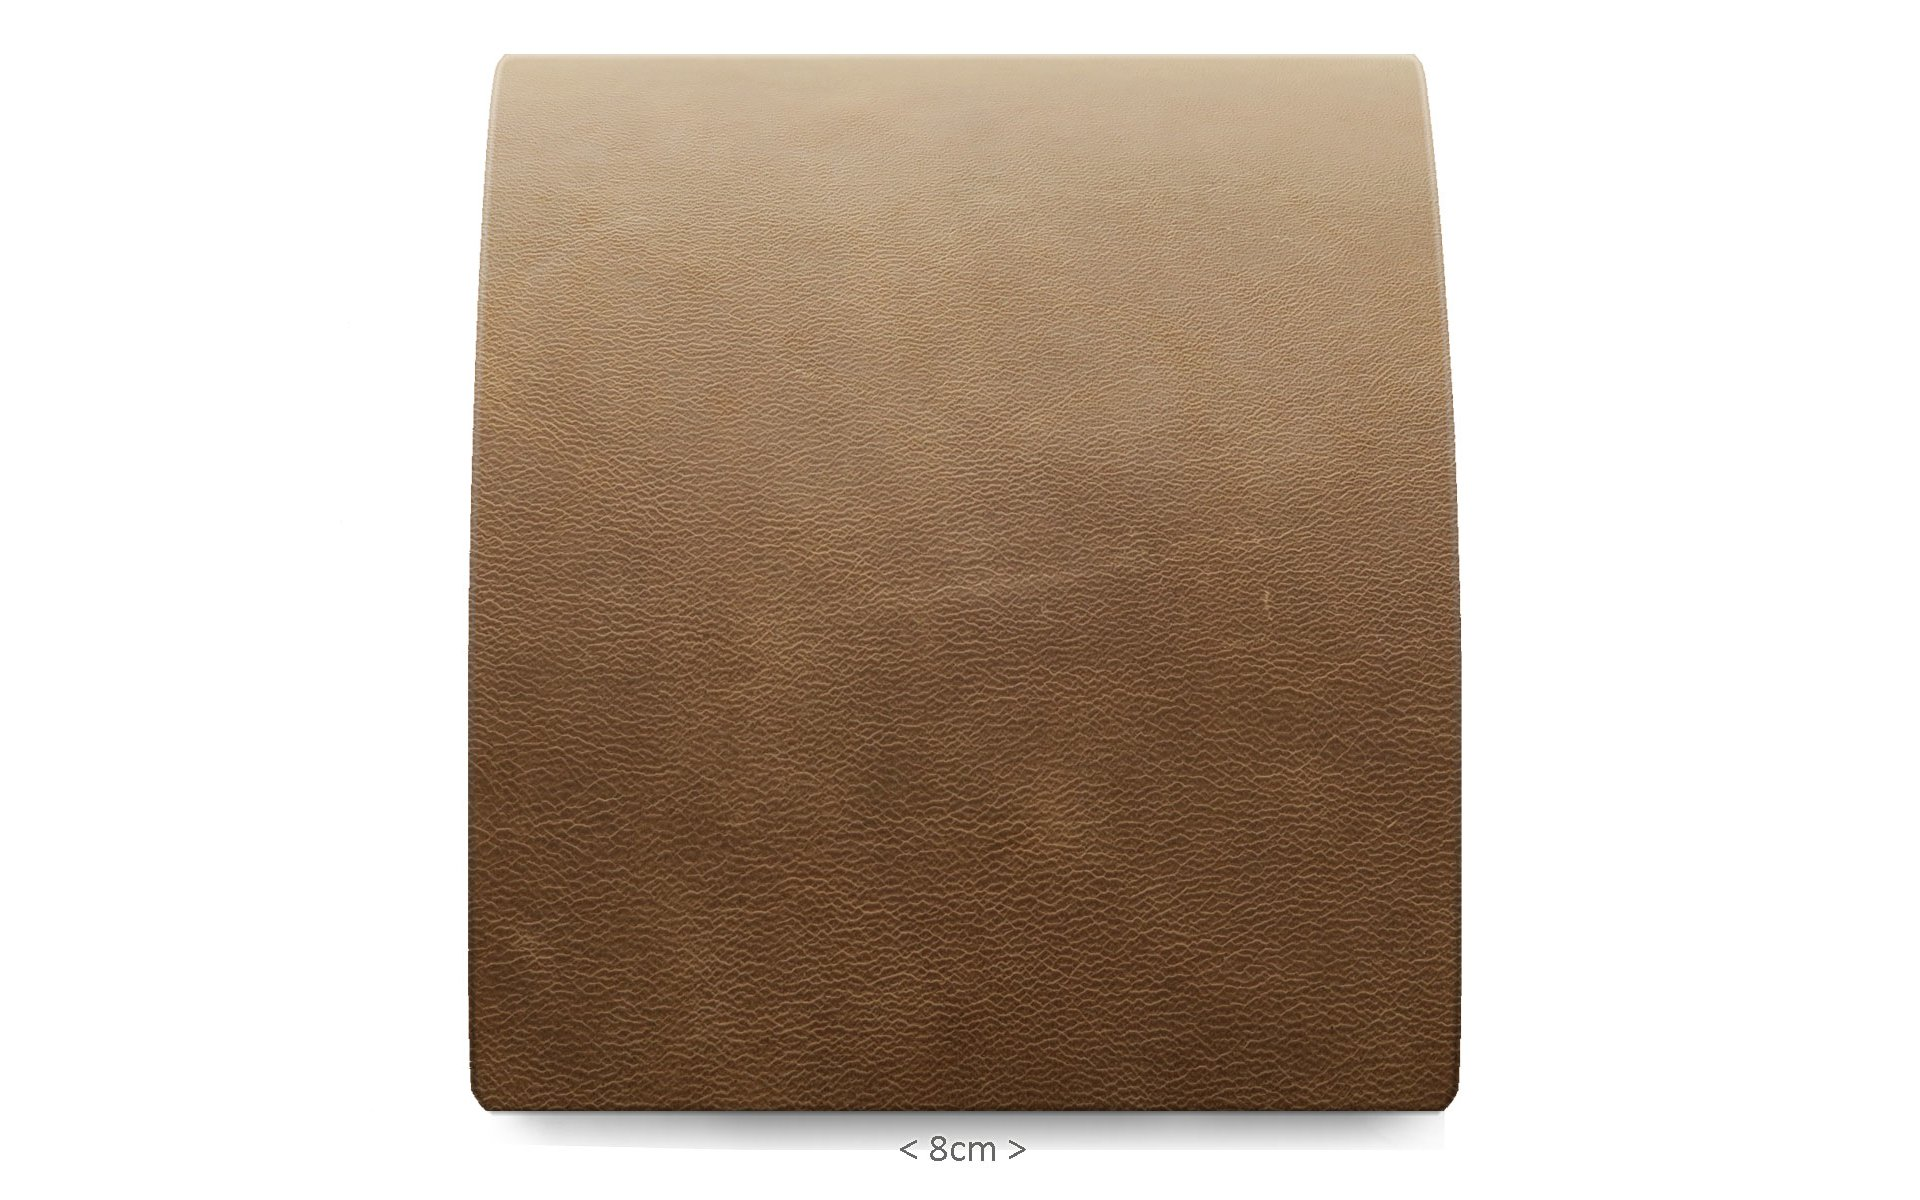 Saddle - Rindleder, redbrown (BAS)